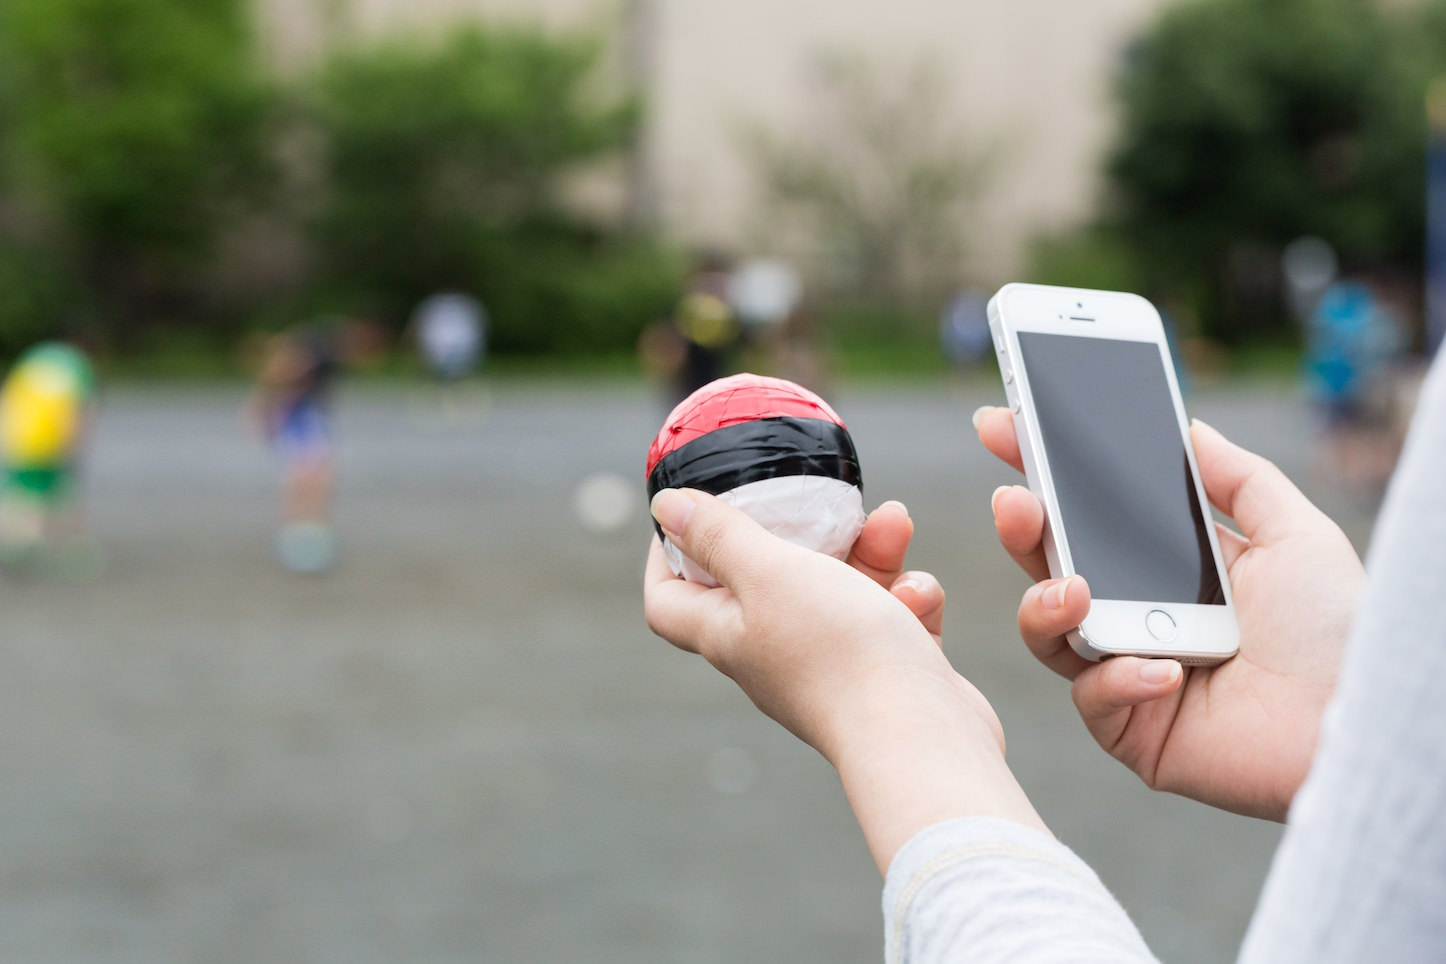 pokemon-go-playing-while-walking-is-dangerous